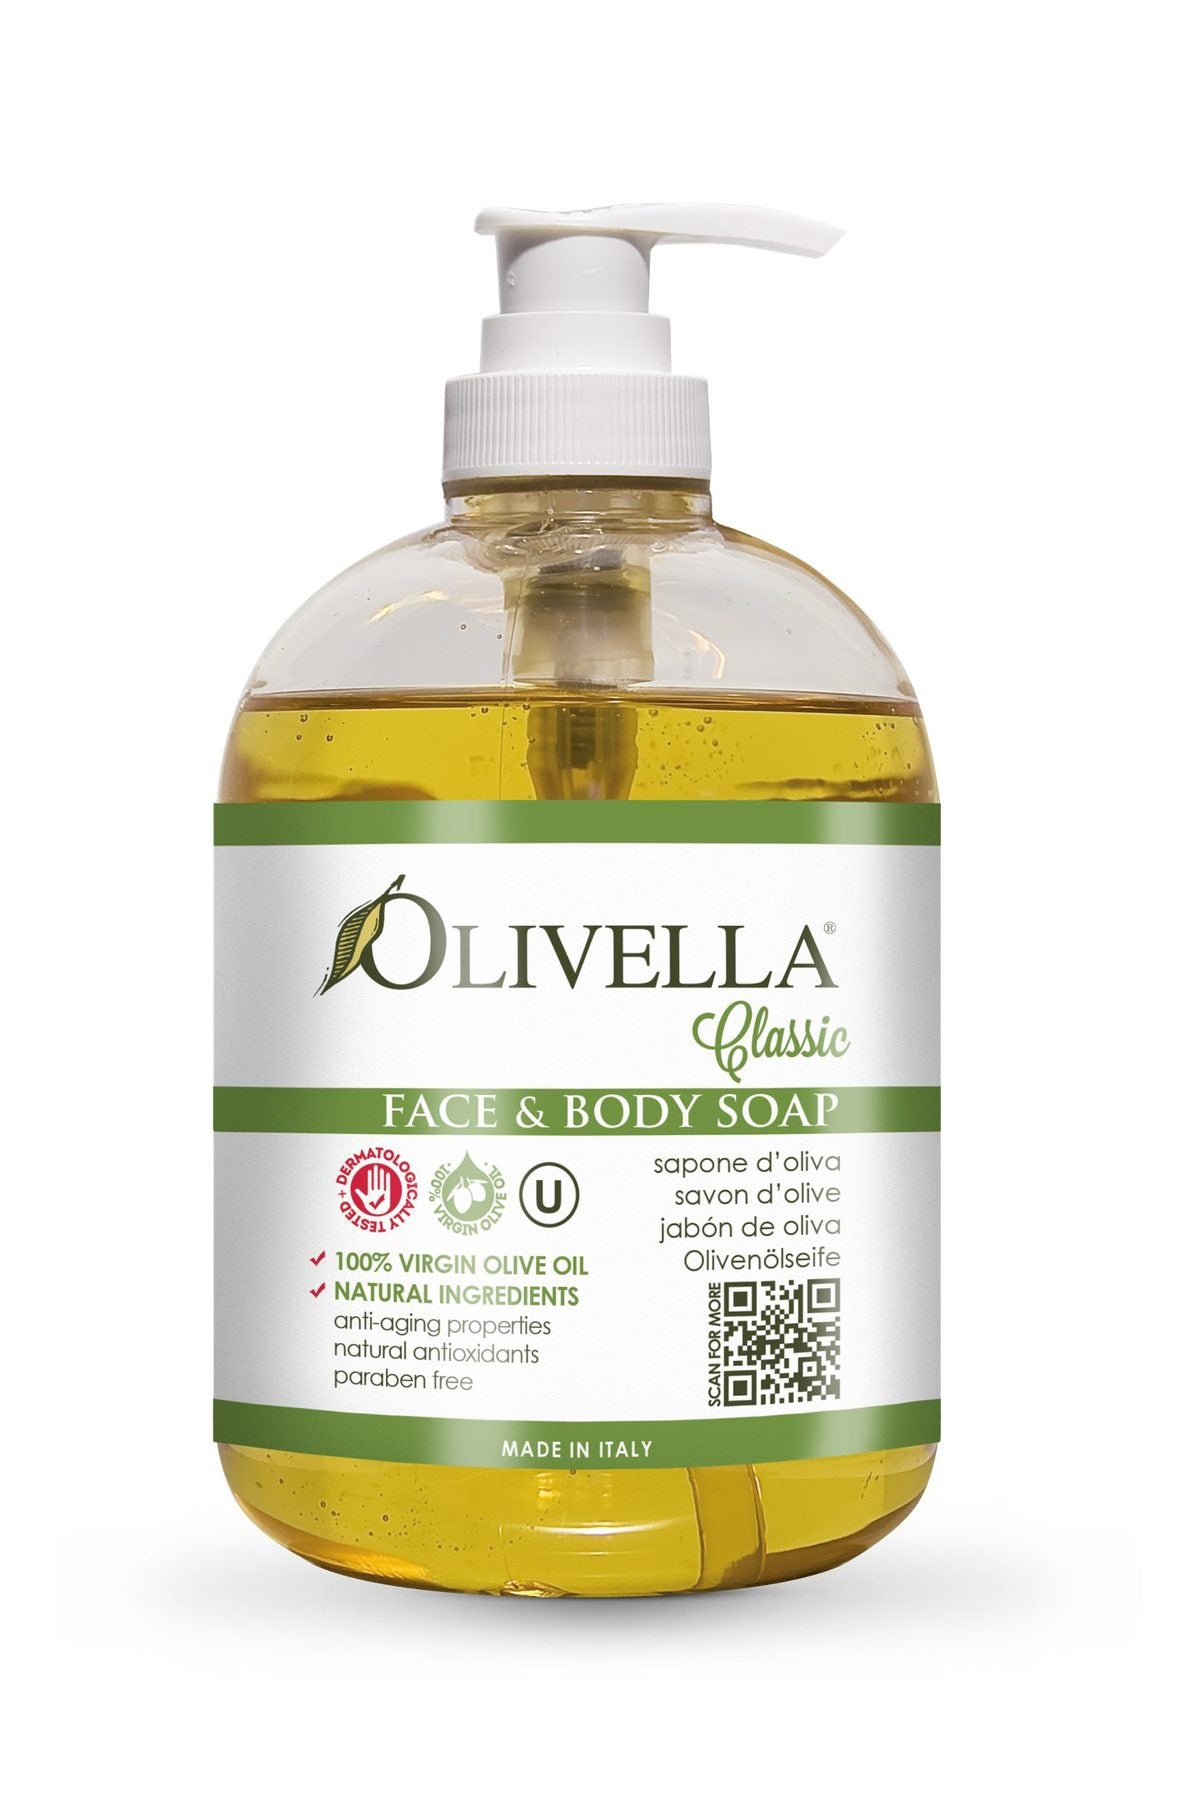 Face and Body Liquid Soap - Classic Georgetown Olive Oil Co.